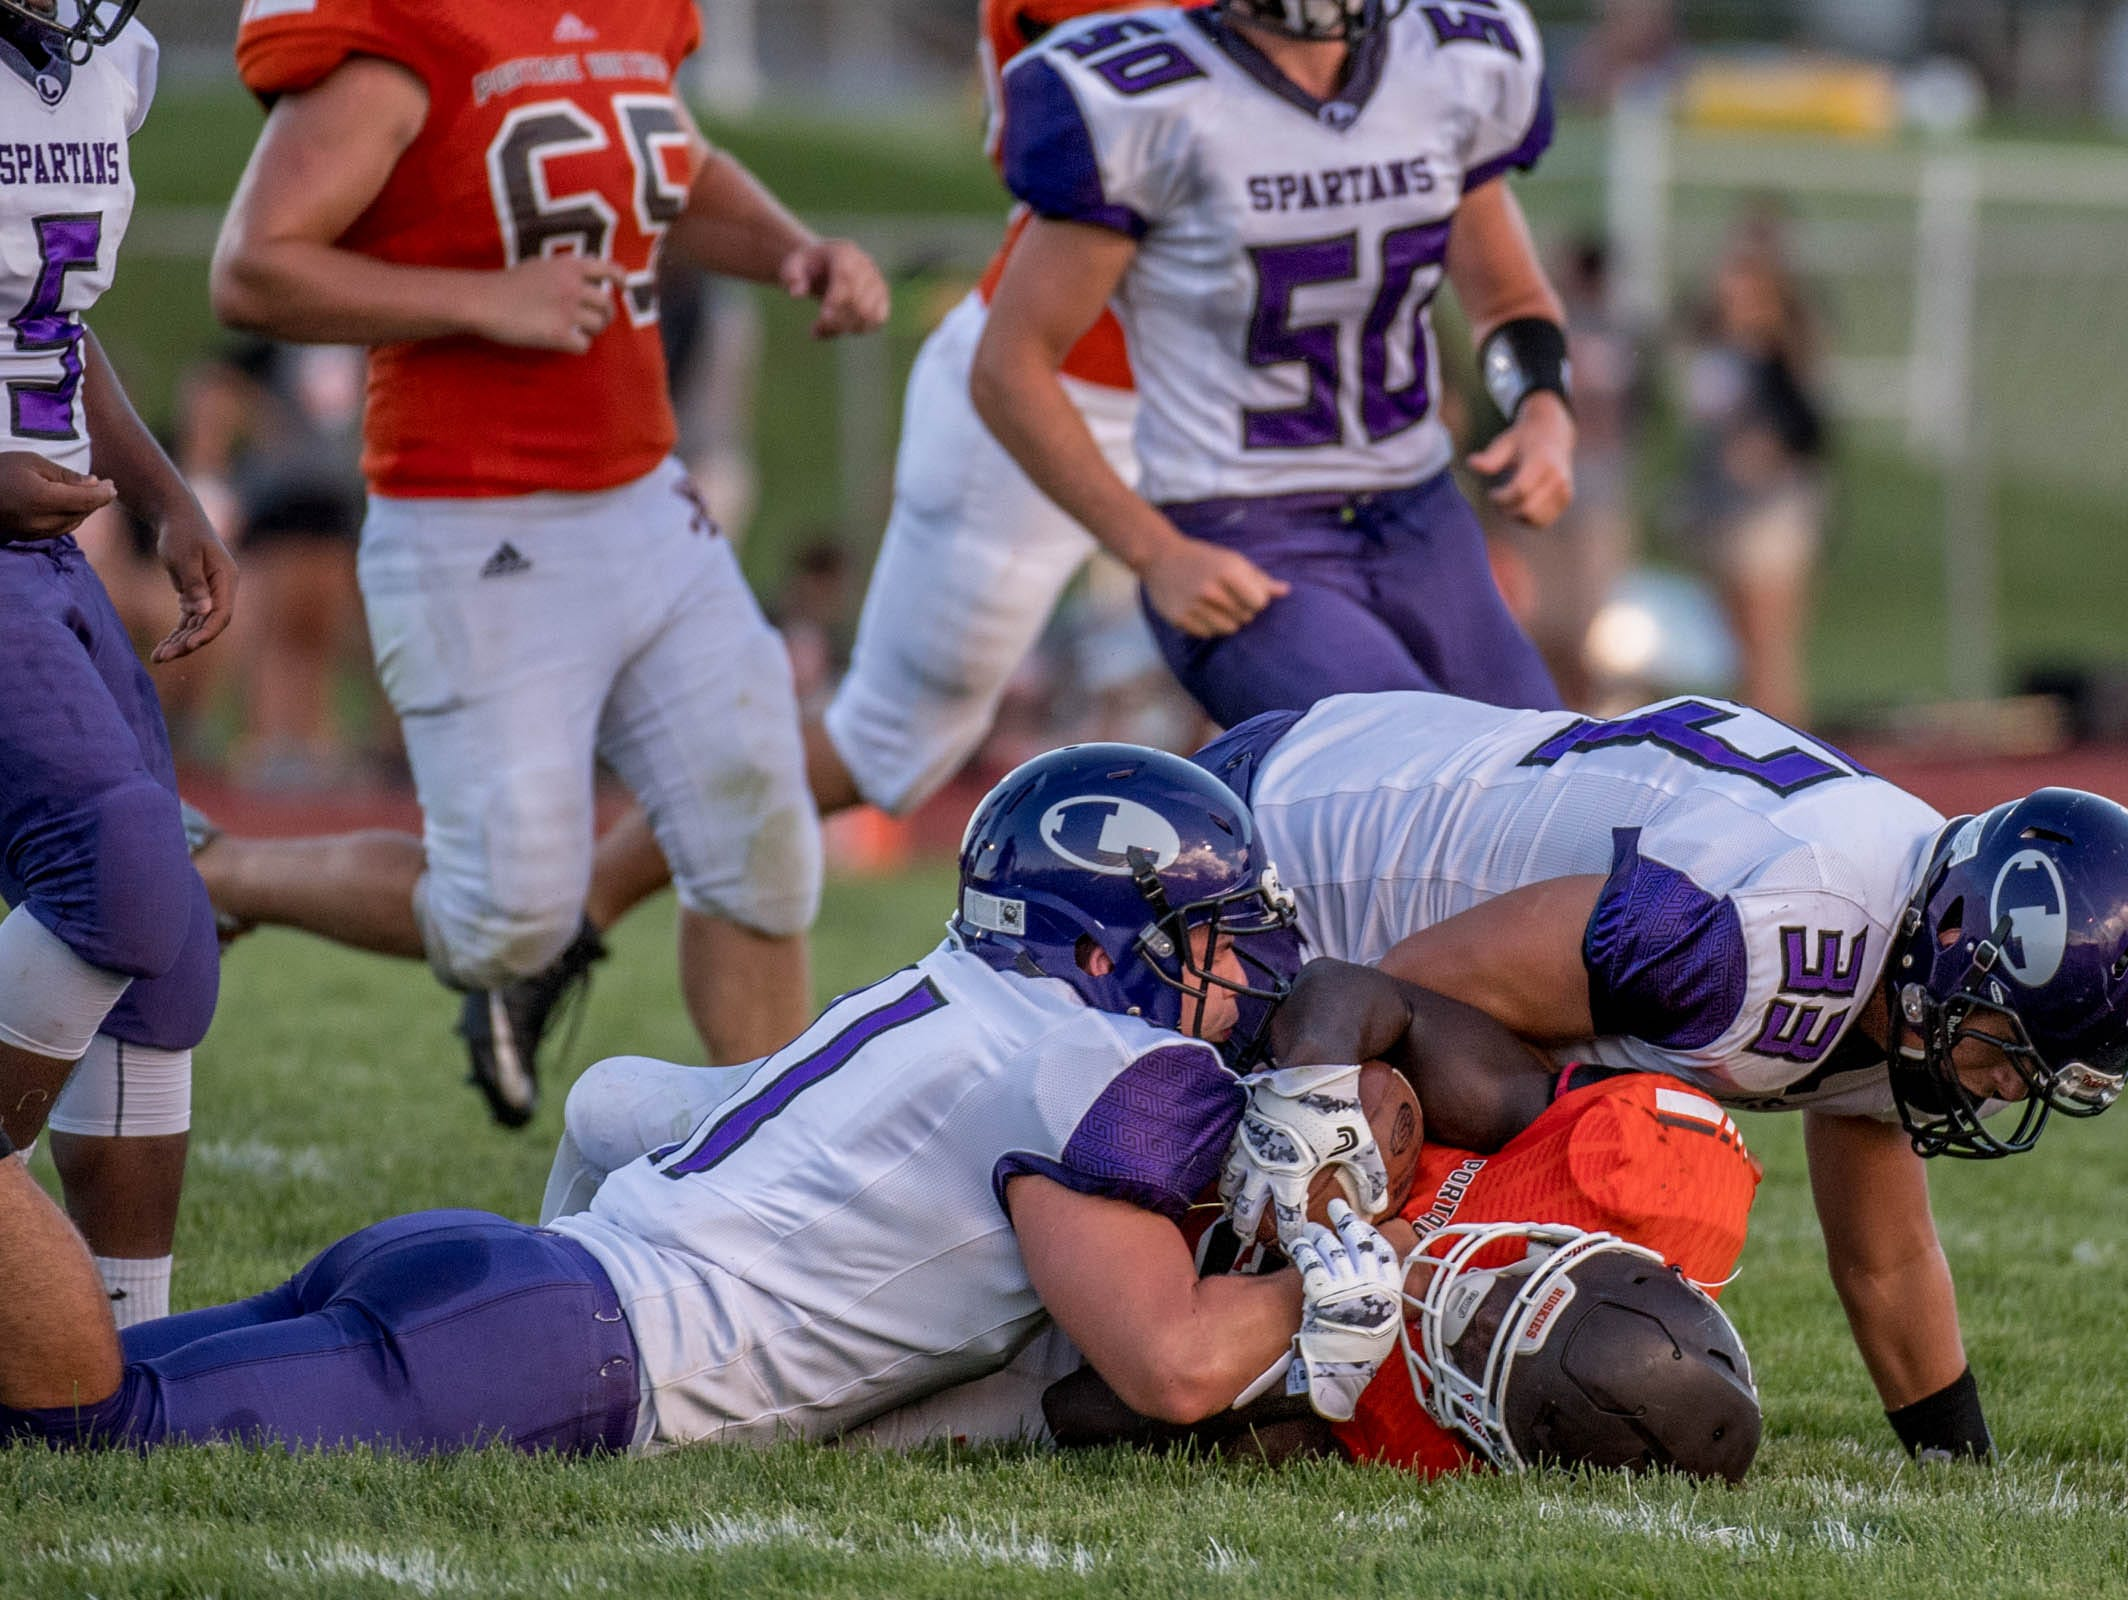 Lakeview tacklers stop the Portage Northern ball carrier on Thursday evening.